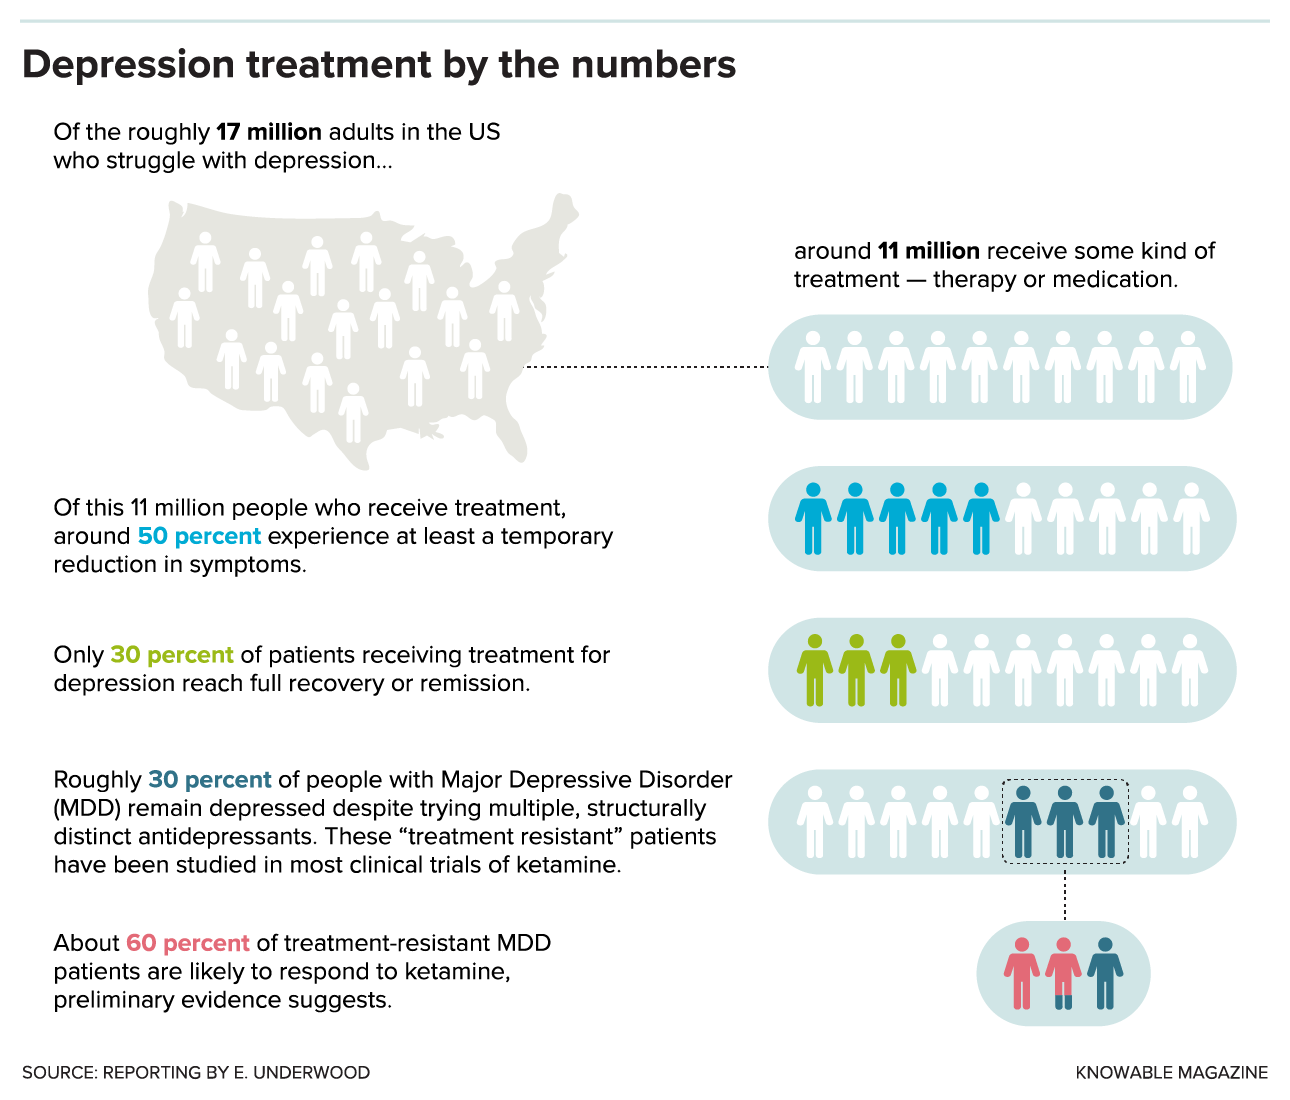 Infographic showing depression treatment rates